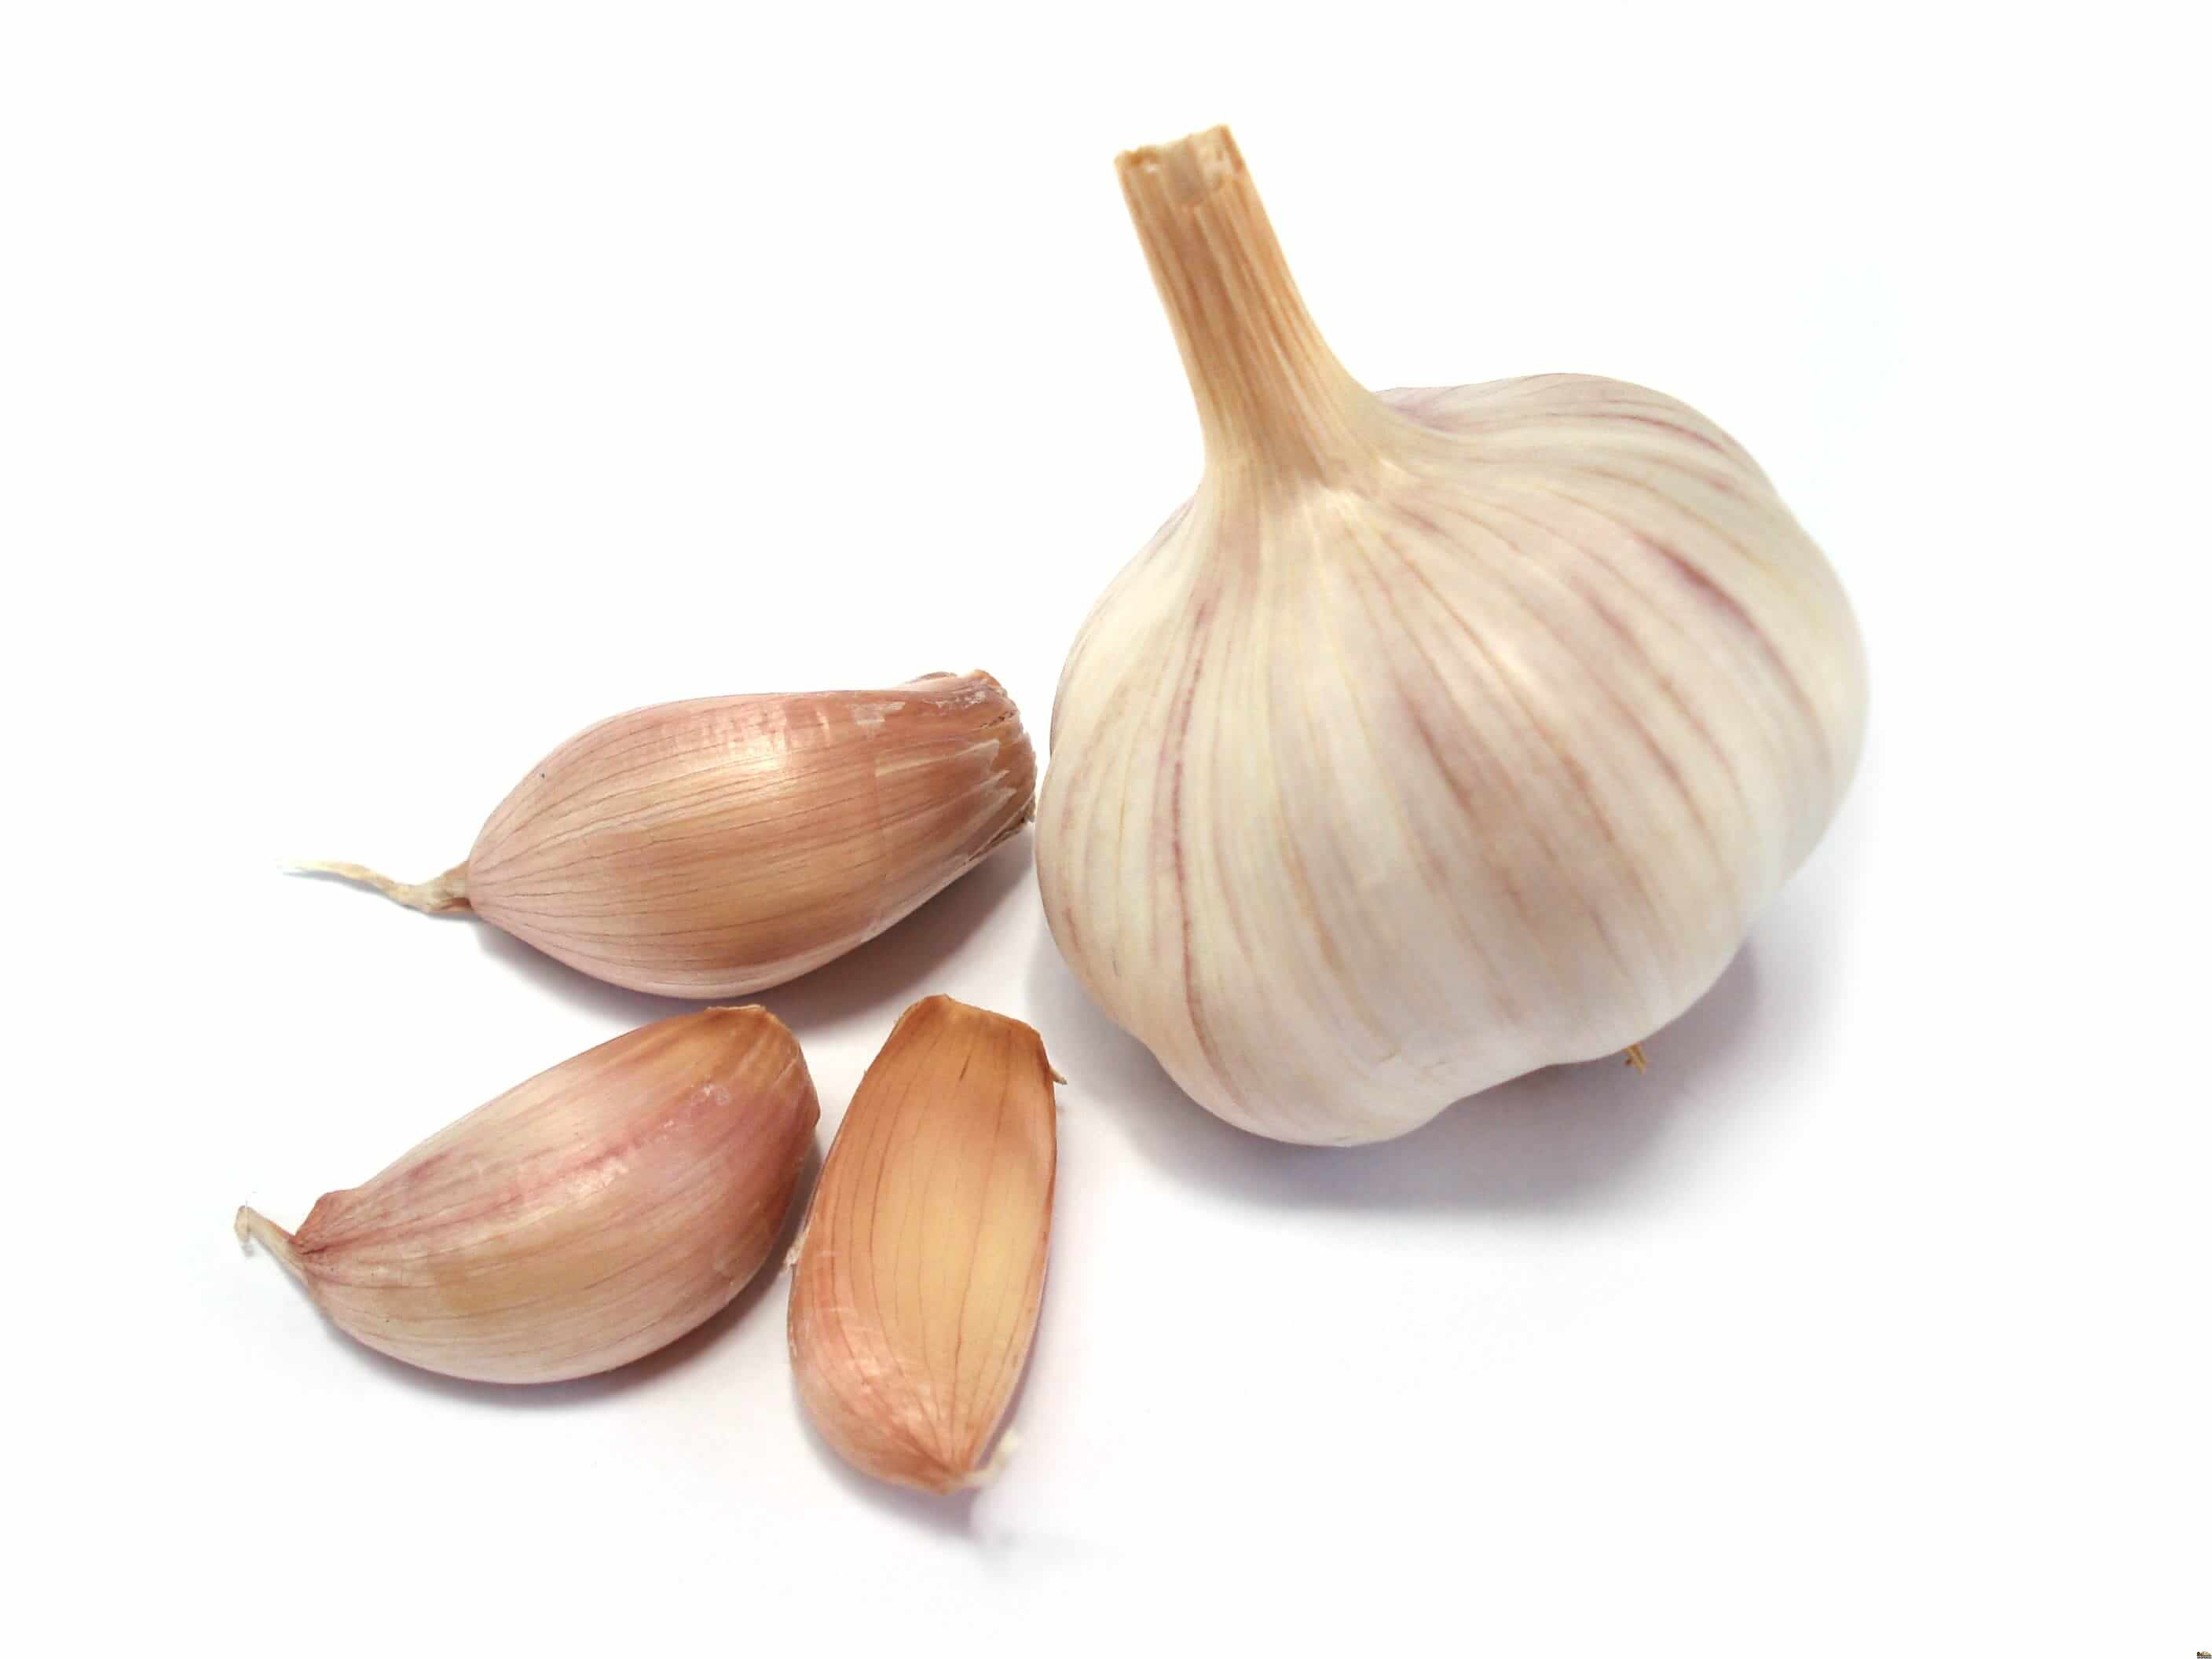 Jumbo Garlic (5 count)